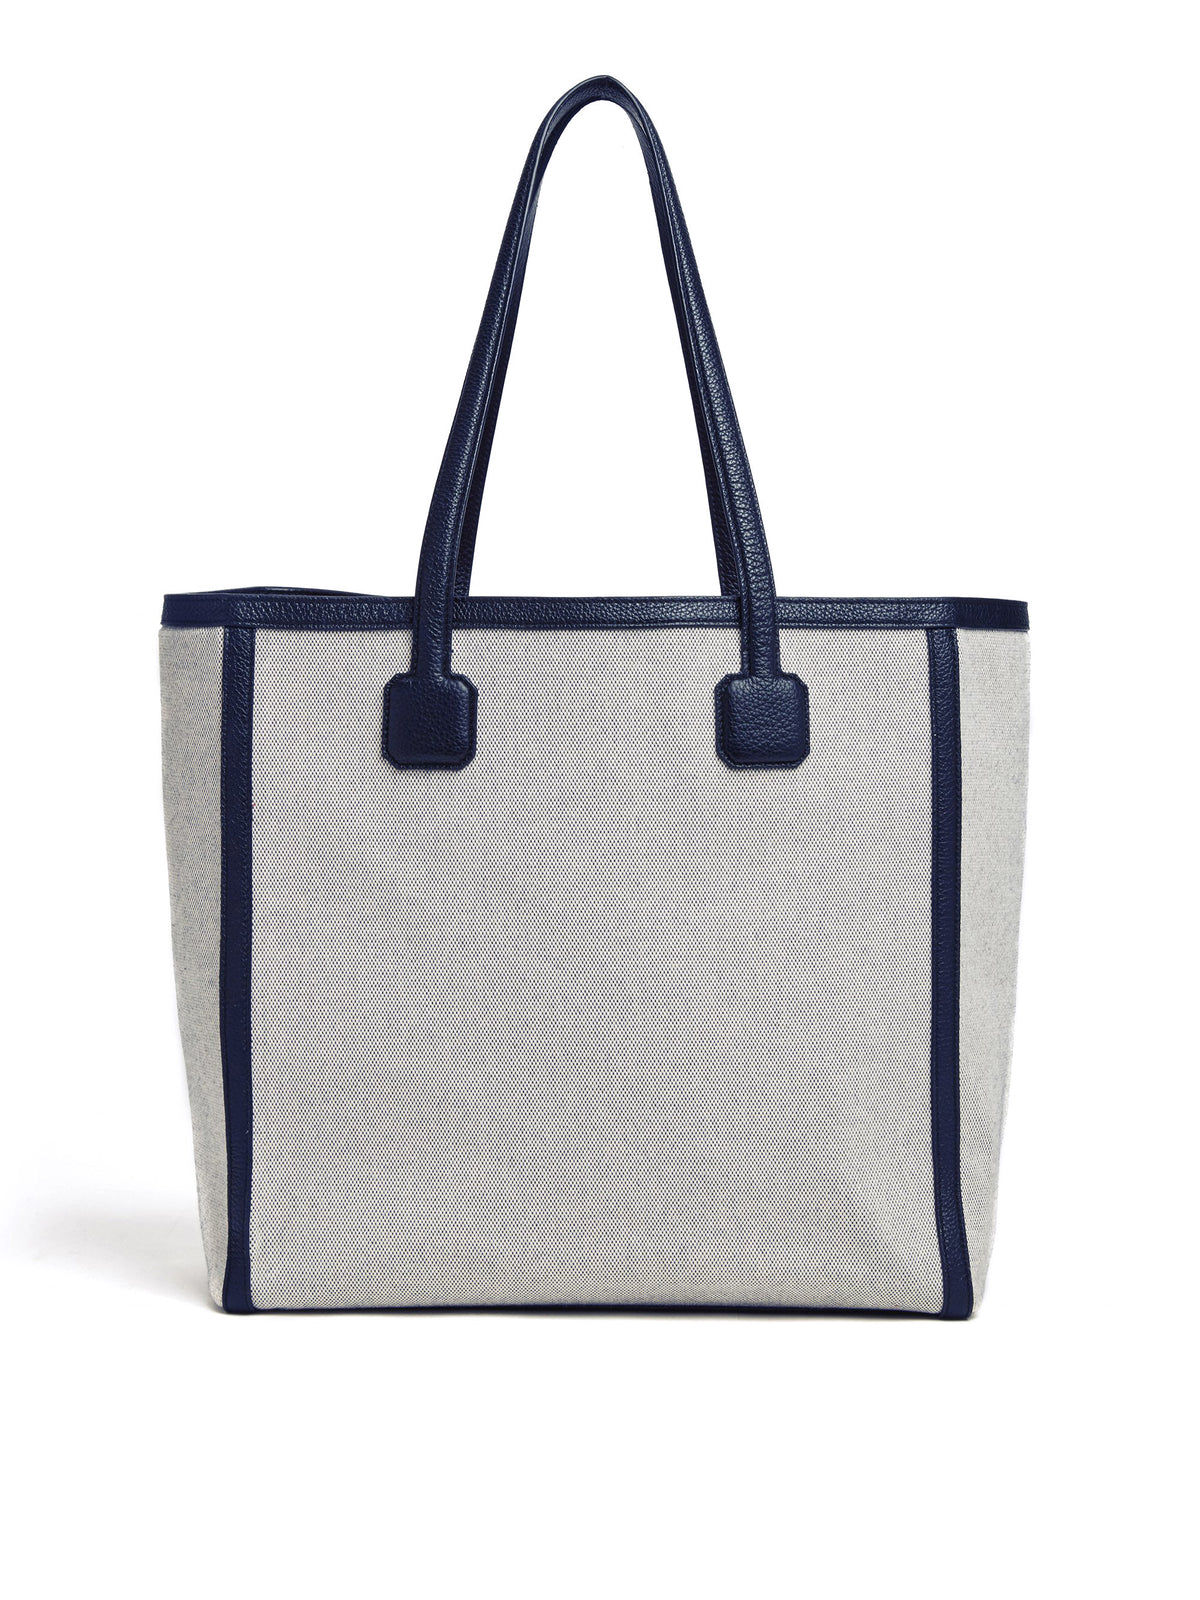 Antibes Birdseye & Leather Tote Bag